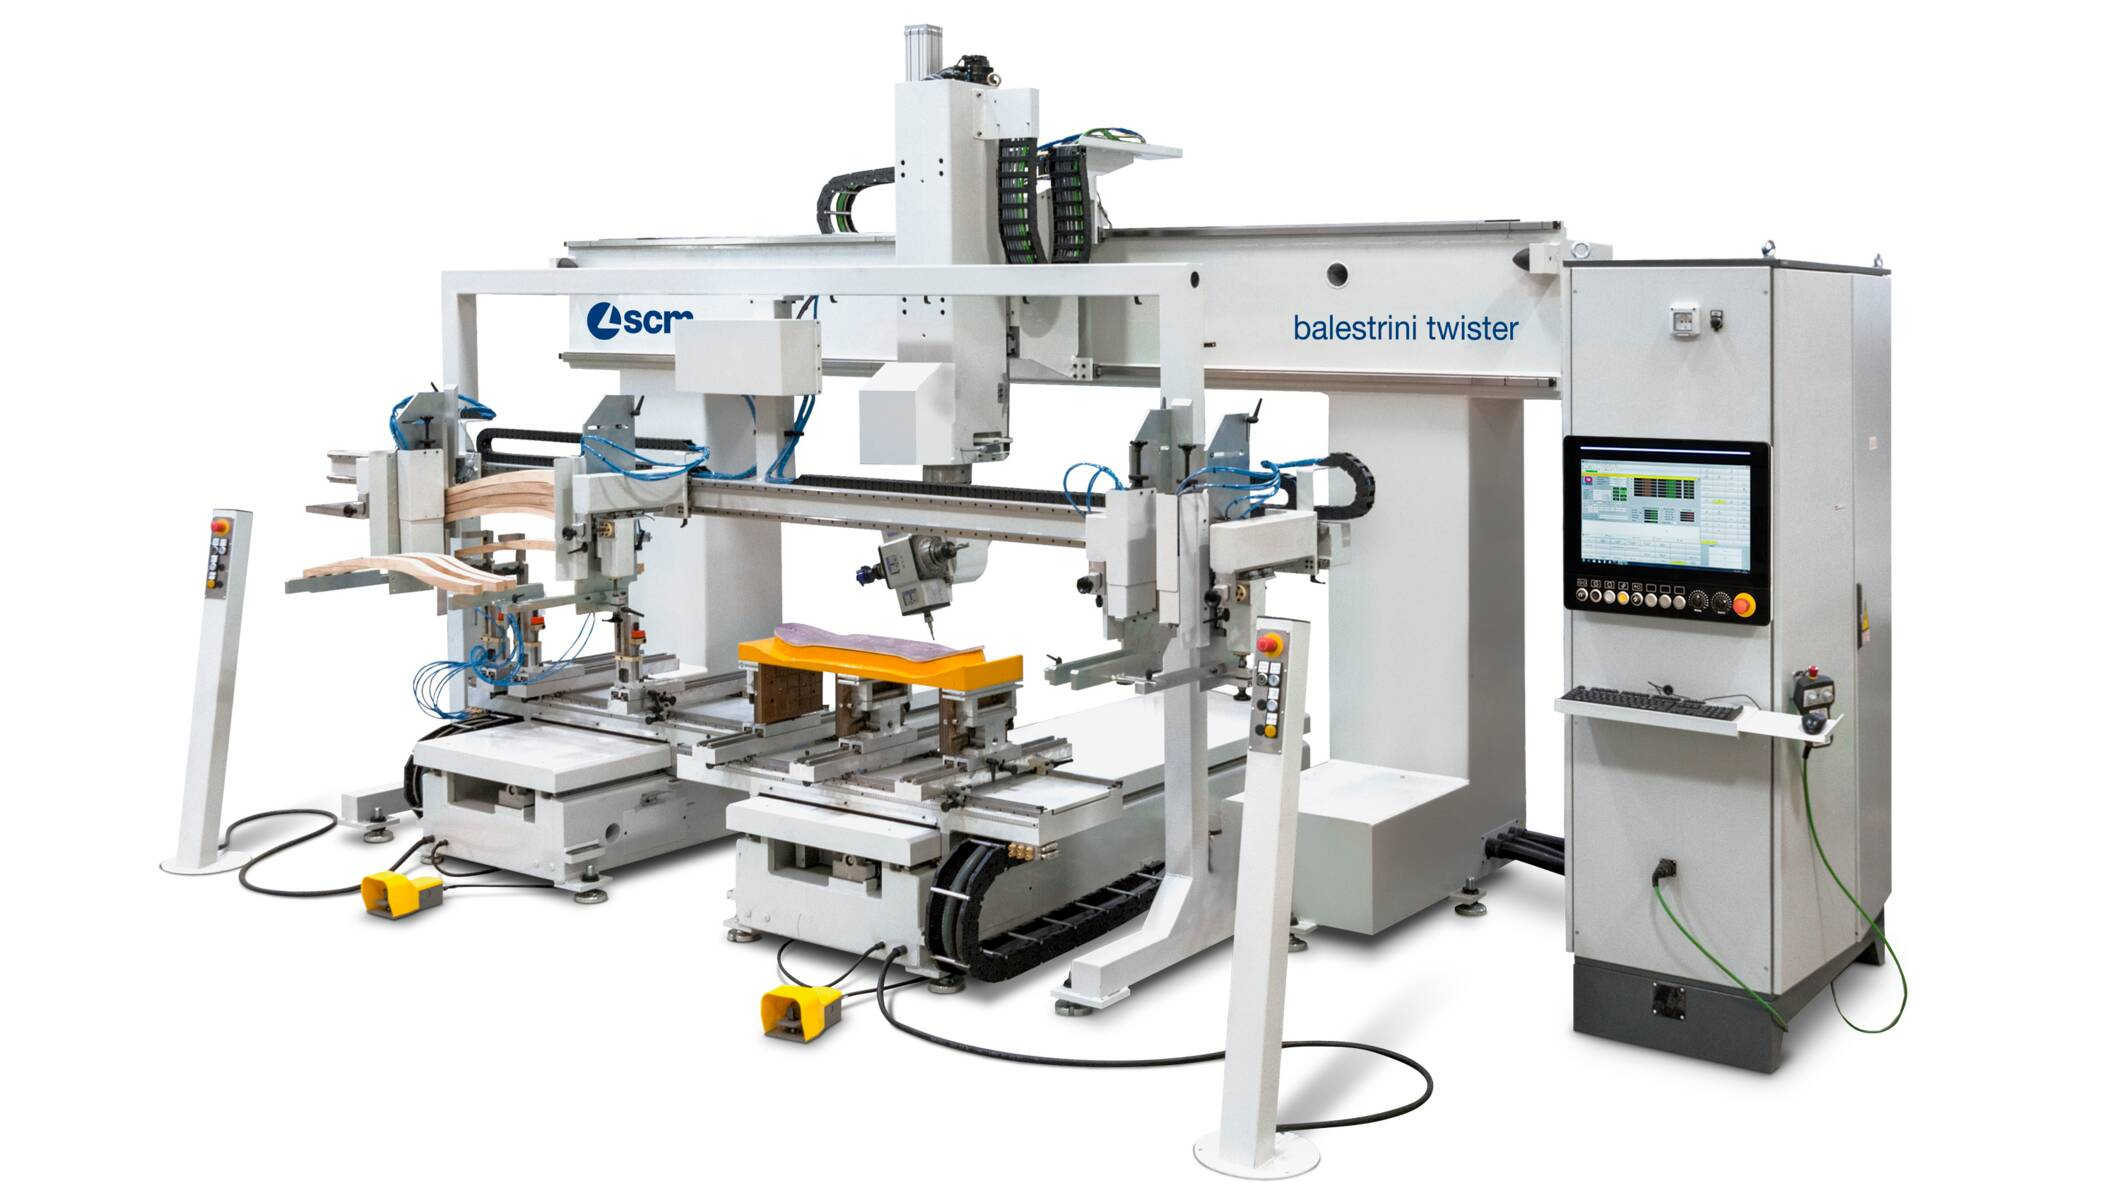 CNC Machining Centres - CNC Machining Centres for solid wood routing and drilling - balestrini twister